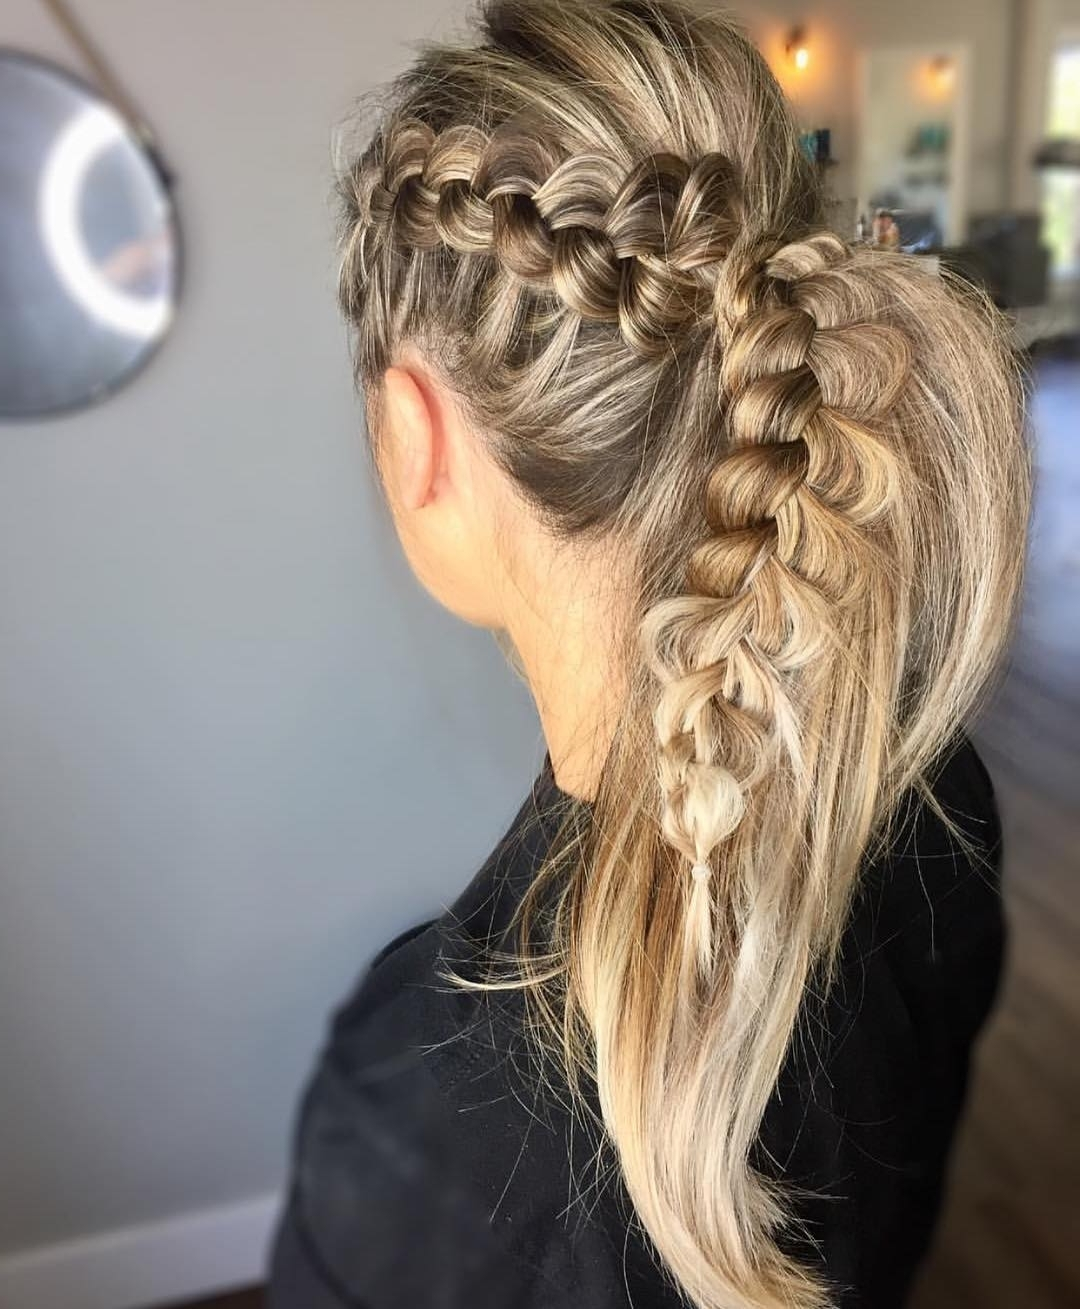 10 Ultra Ponytail Braided Hairstyles For Long Hair; Parties! 2018 Throughout 2018 Braided Boho Locks Pony Hairstyles (View 2 of 20)